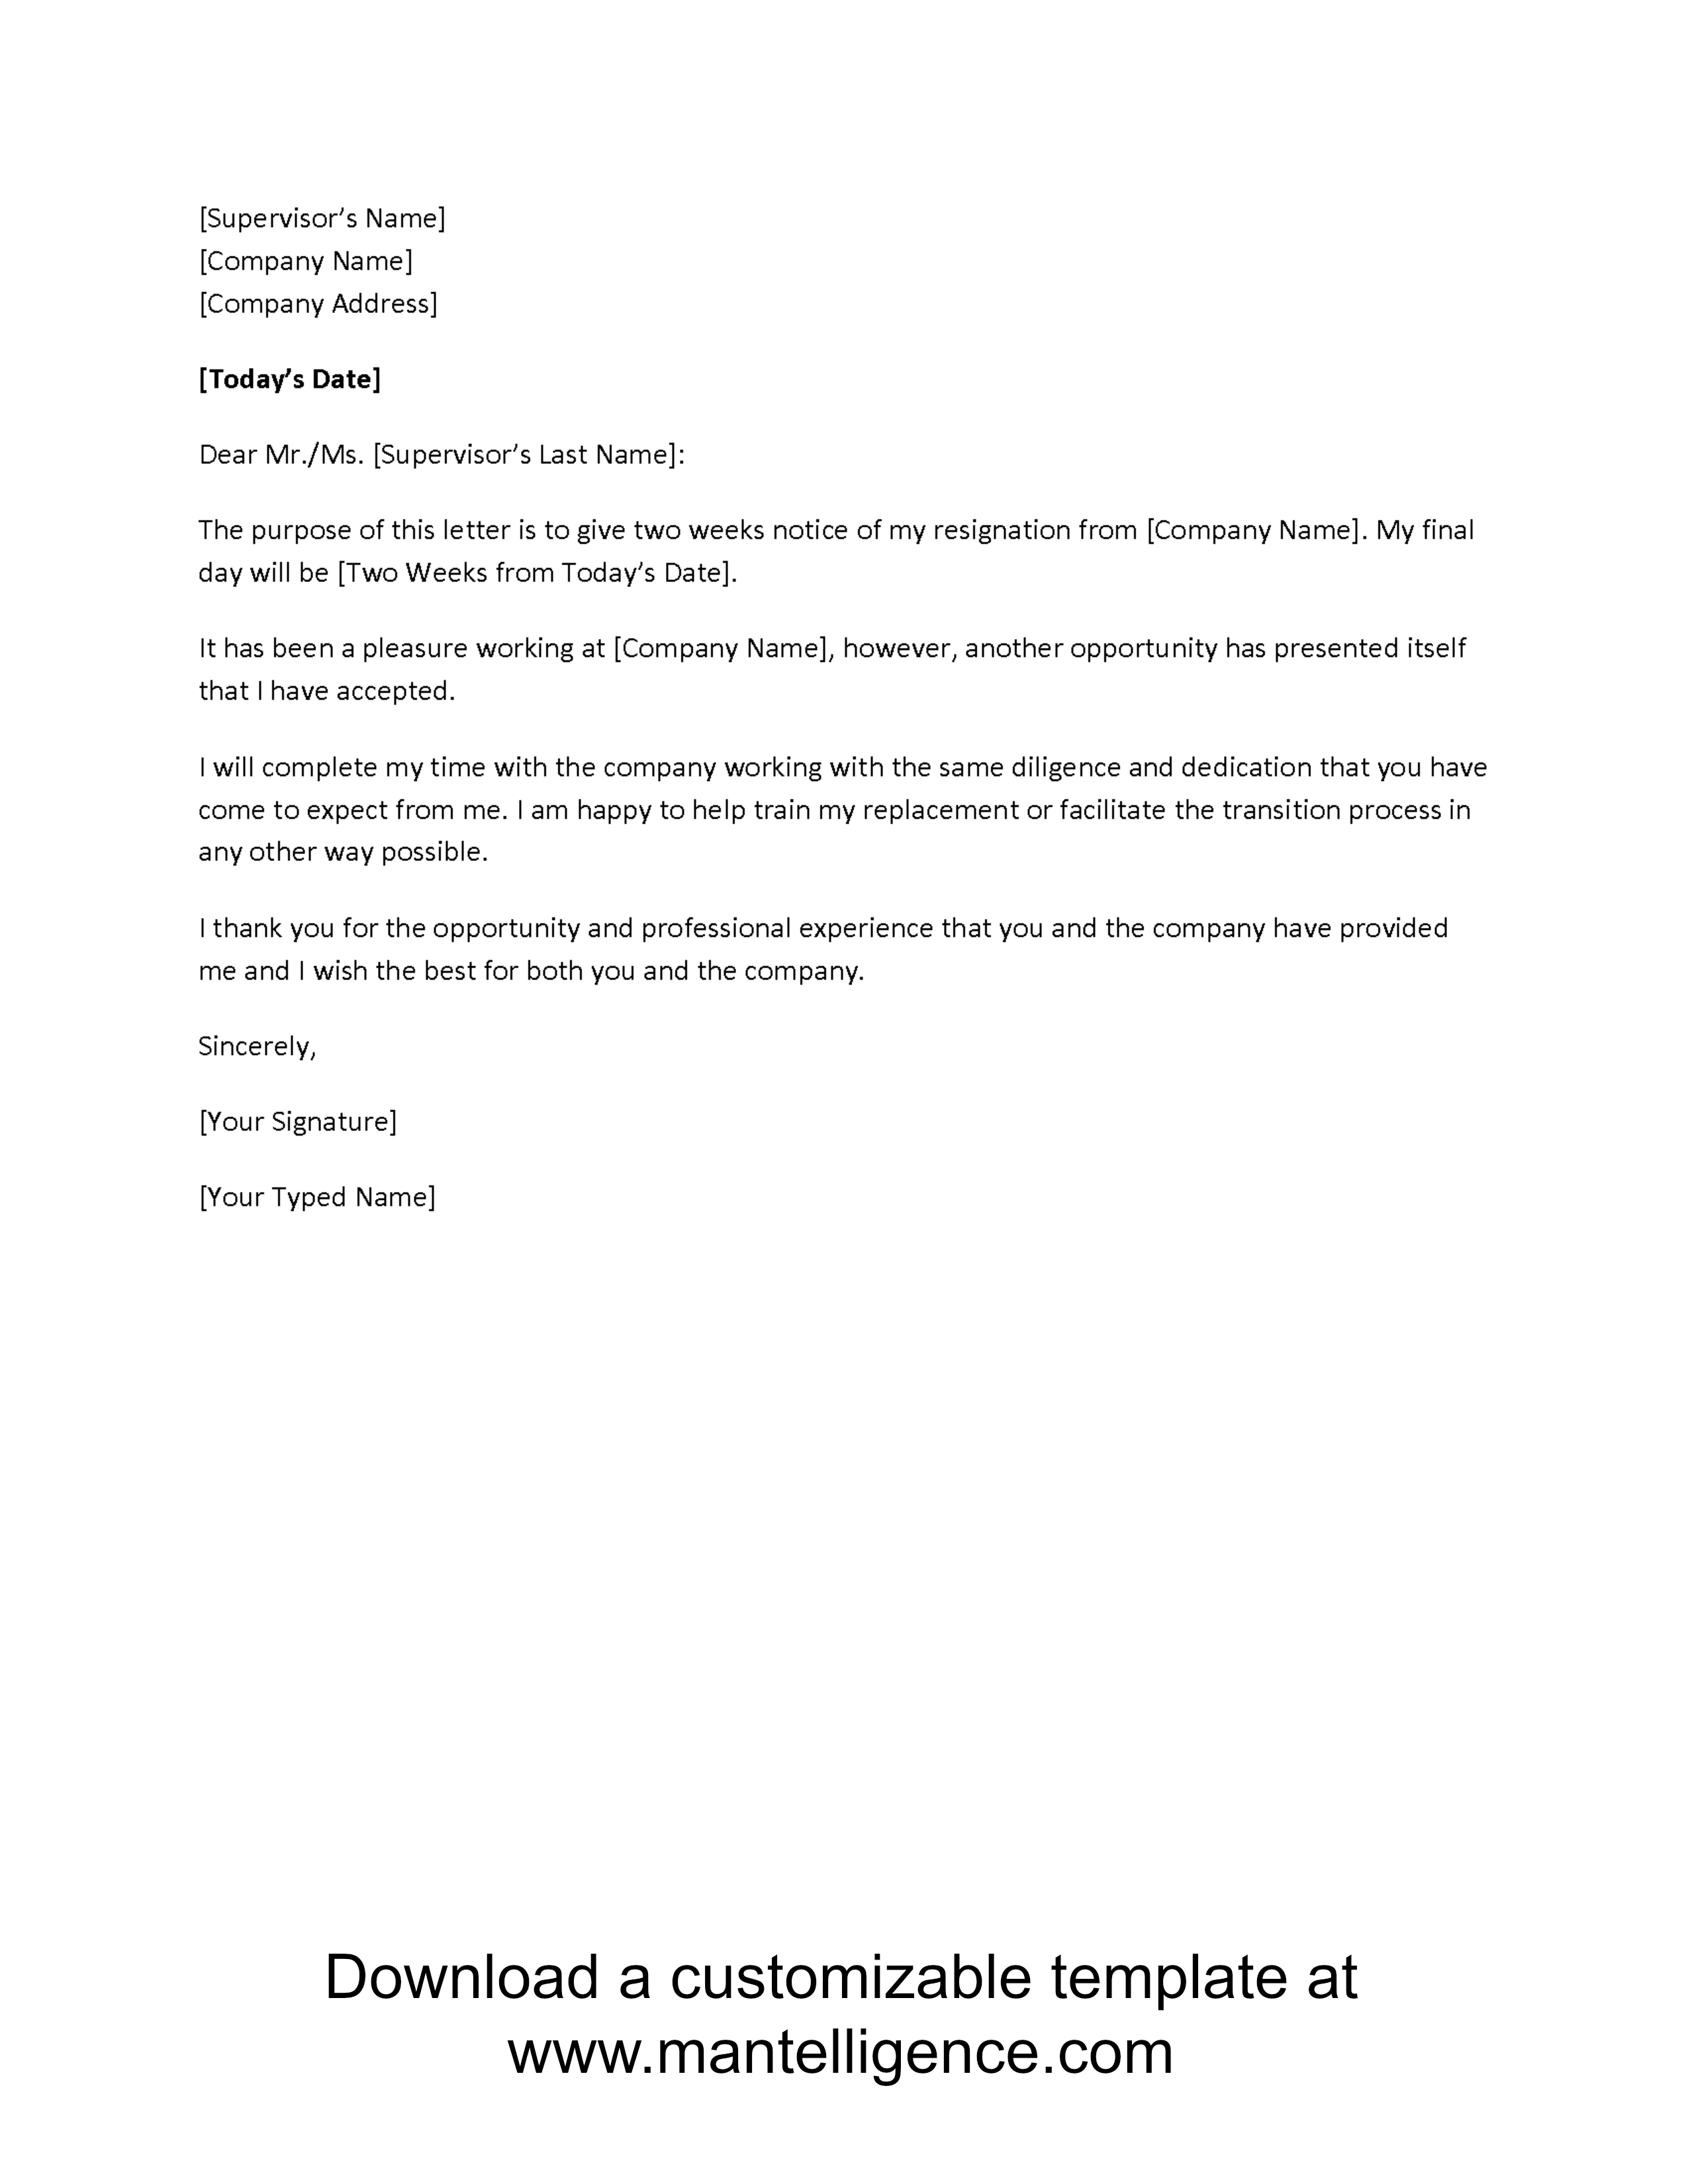 Resignation Letter Template Free - 3 Highly Professional Two Weeks Notice Letter Templates